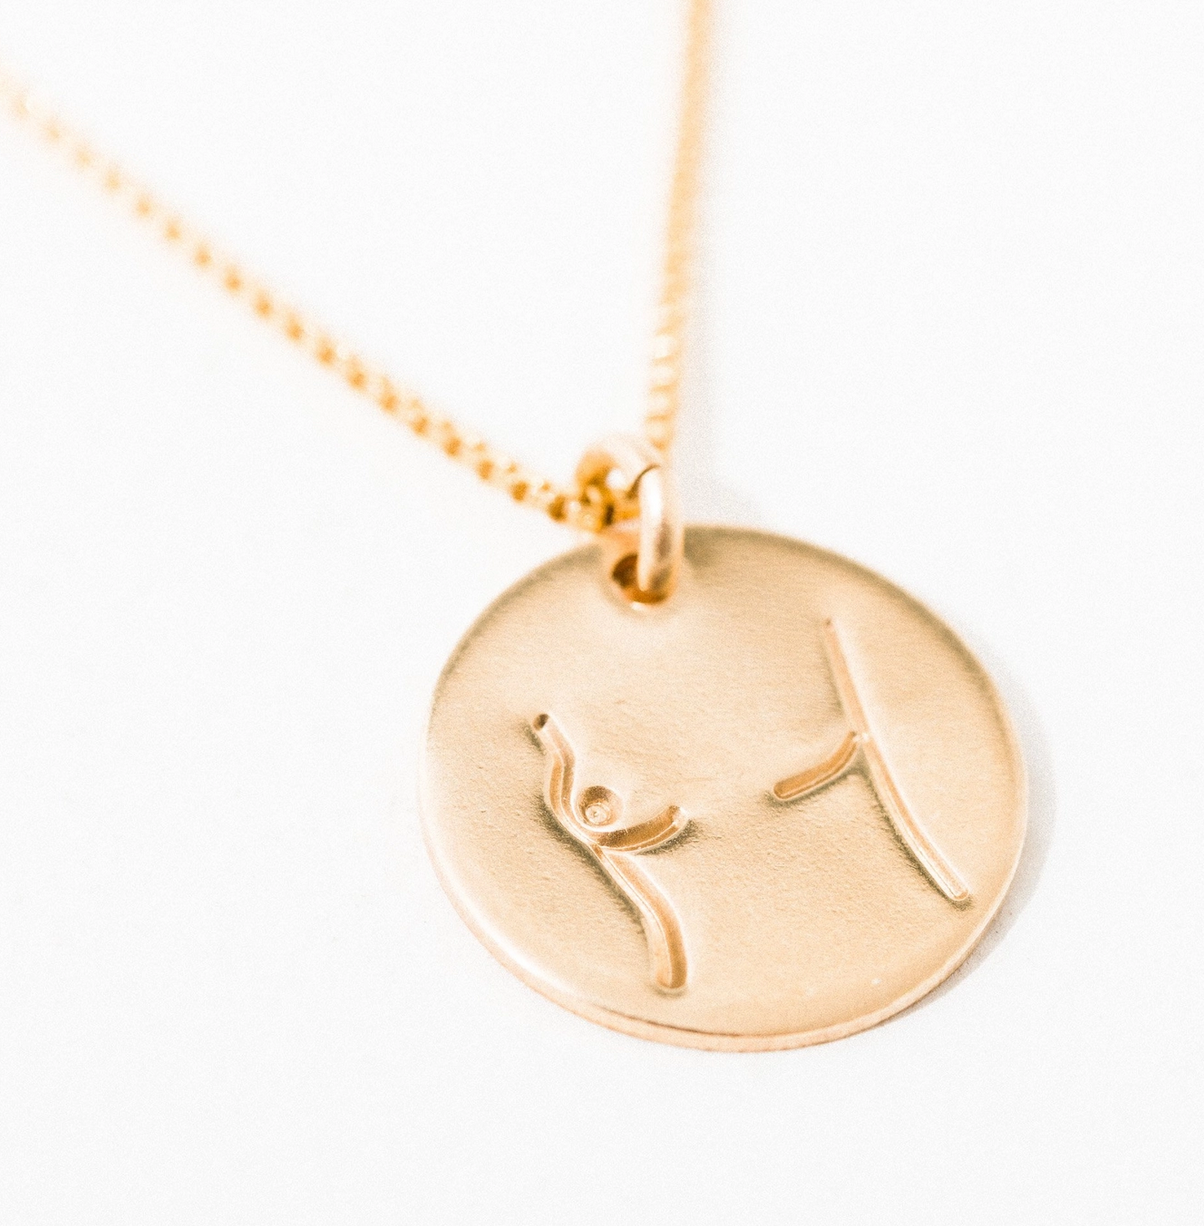 Larissa Loden Mastectomy Pendant Necklace-Gold Filled